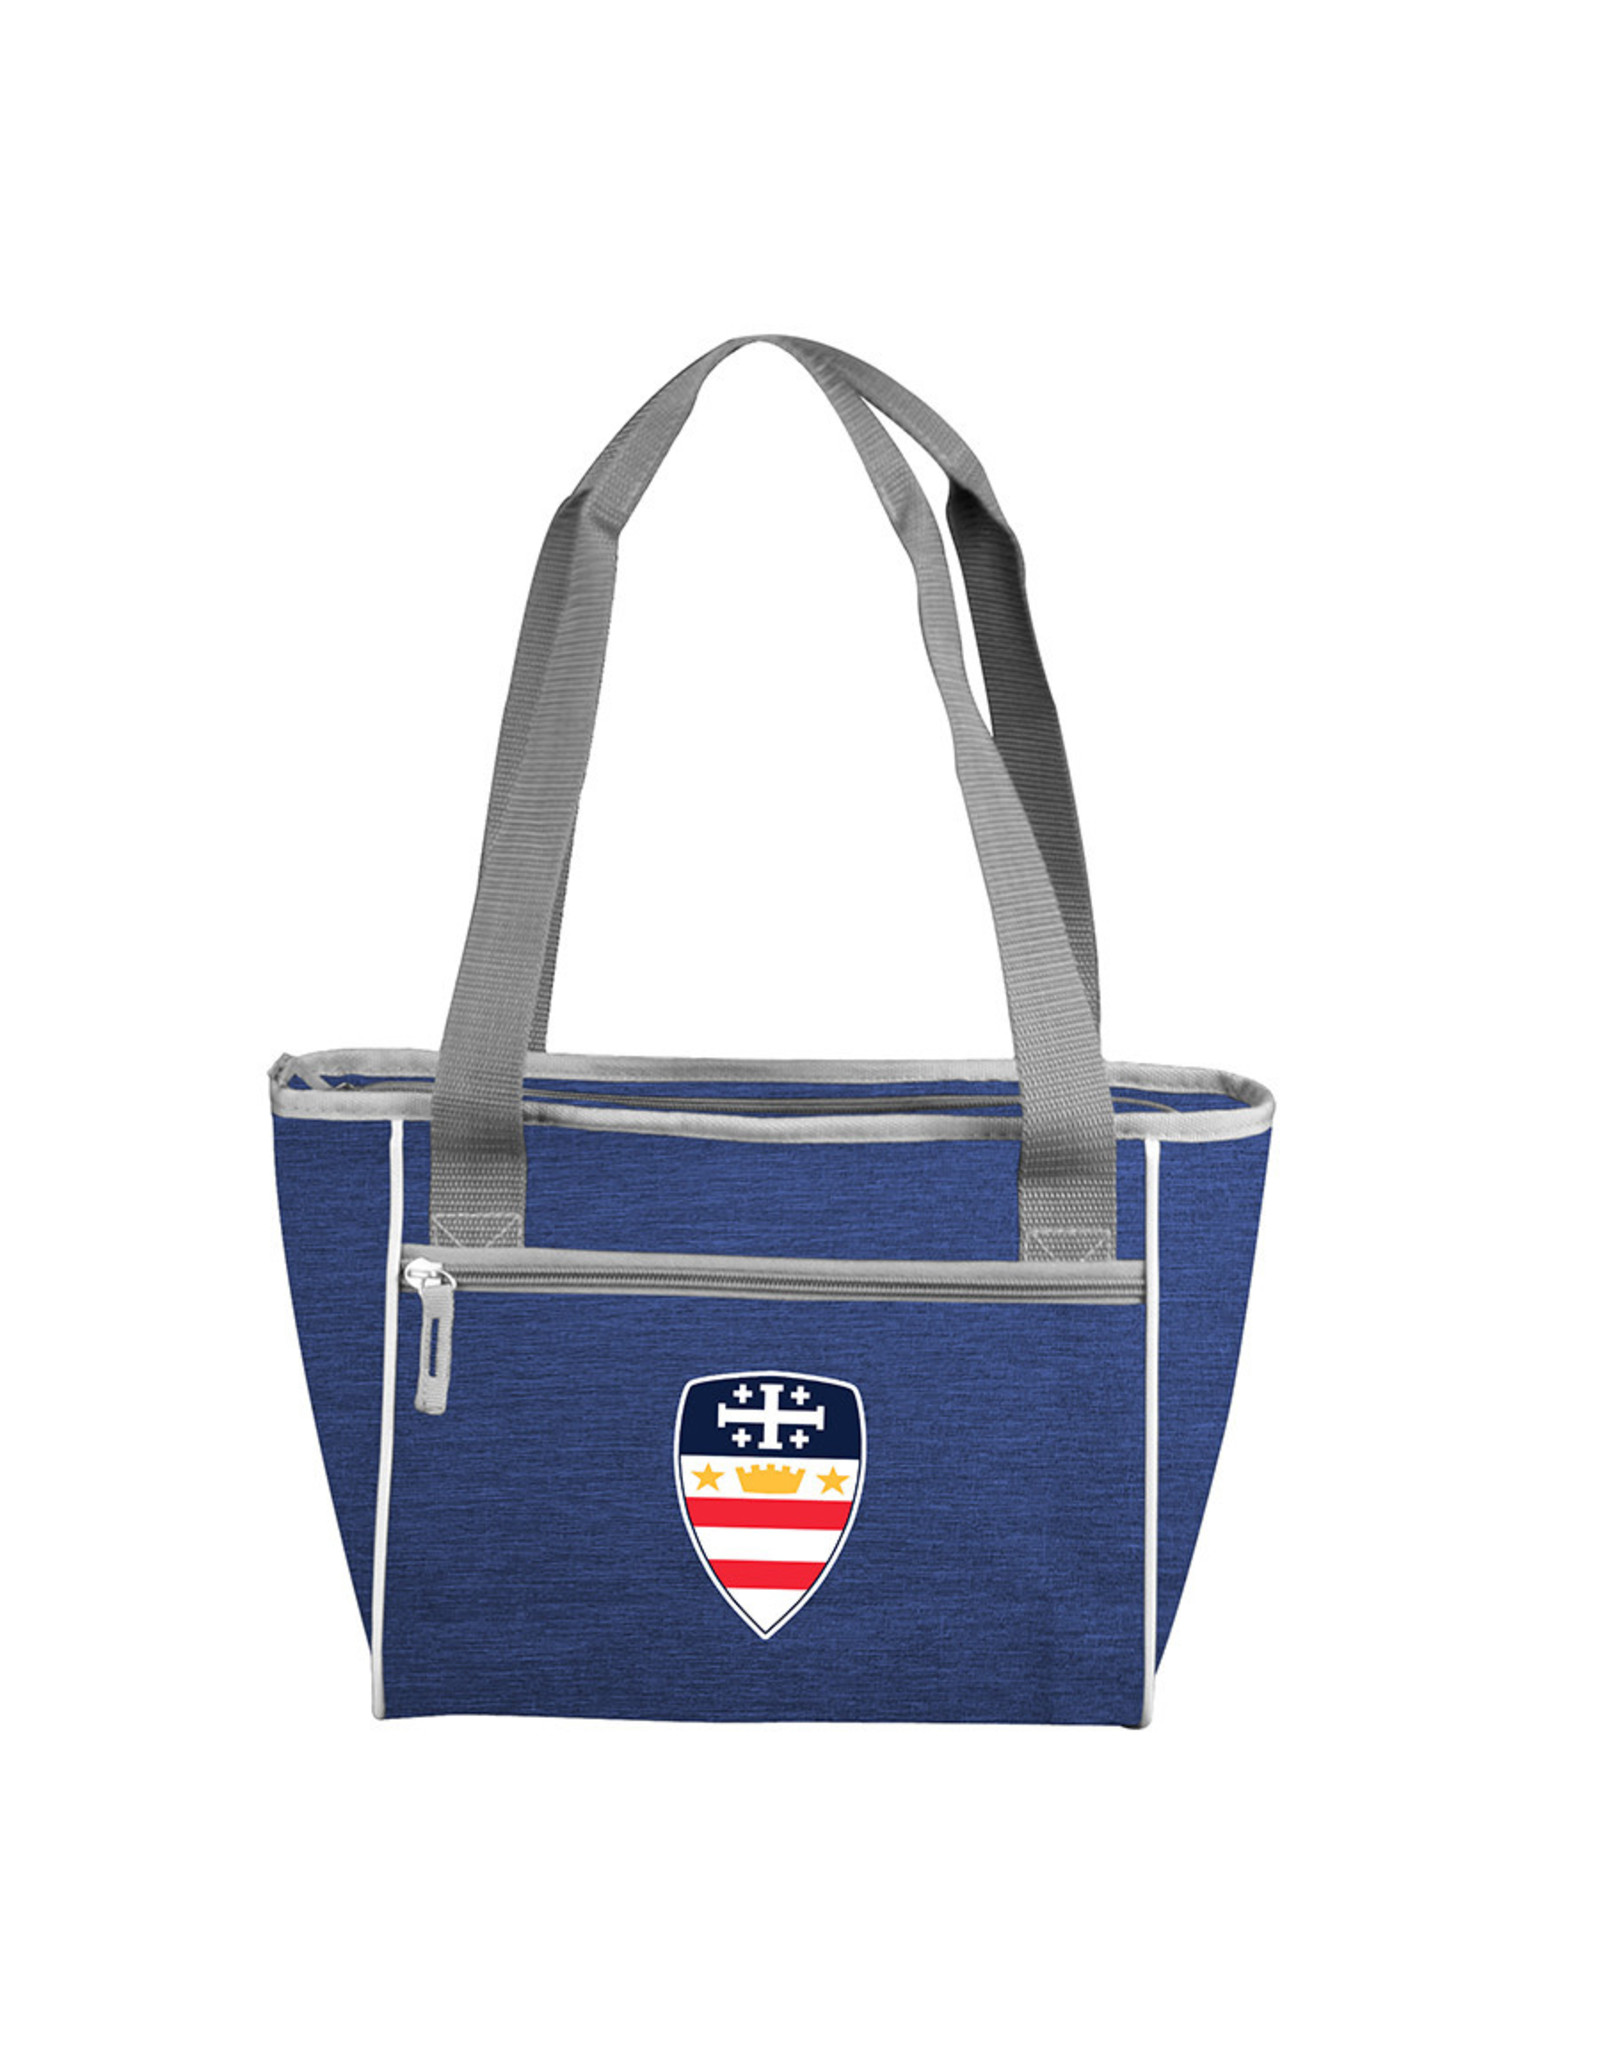 COOLER INSULATED NAVY